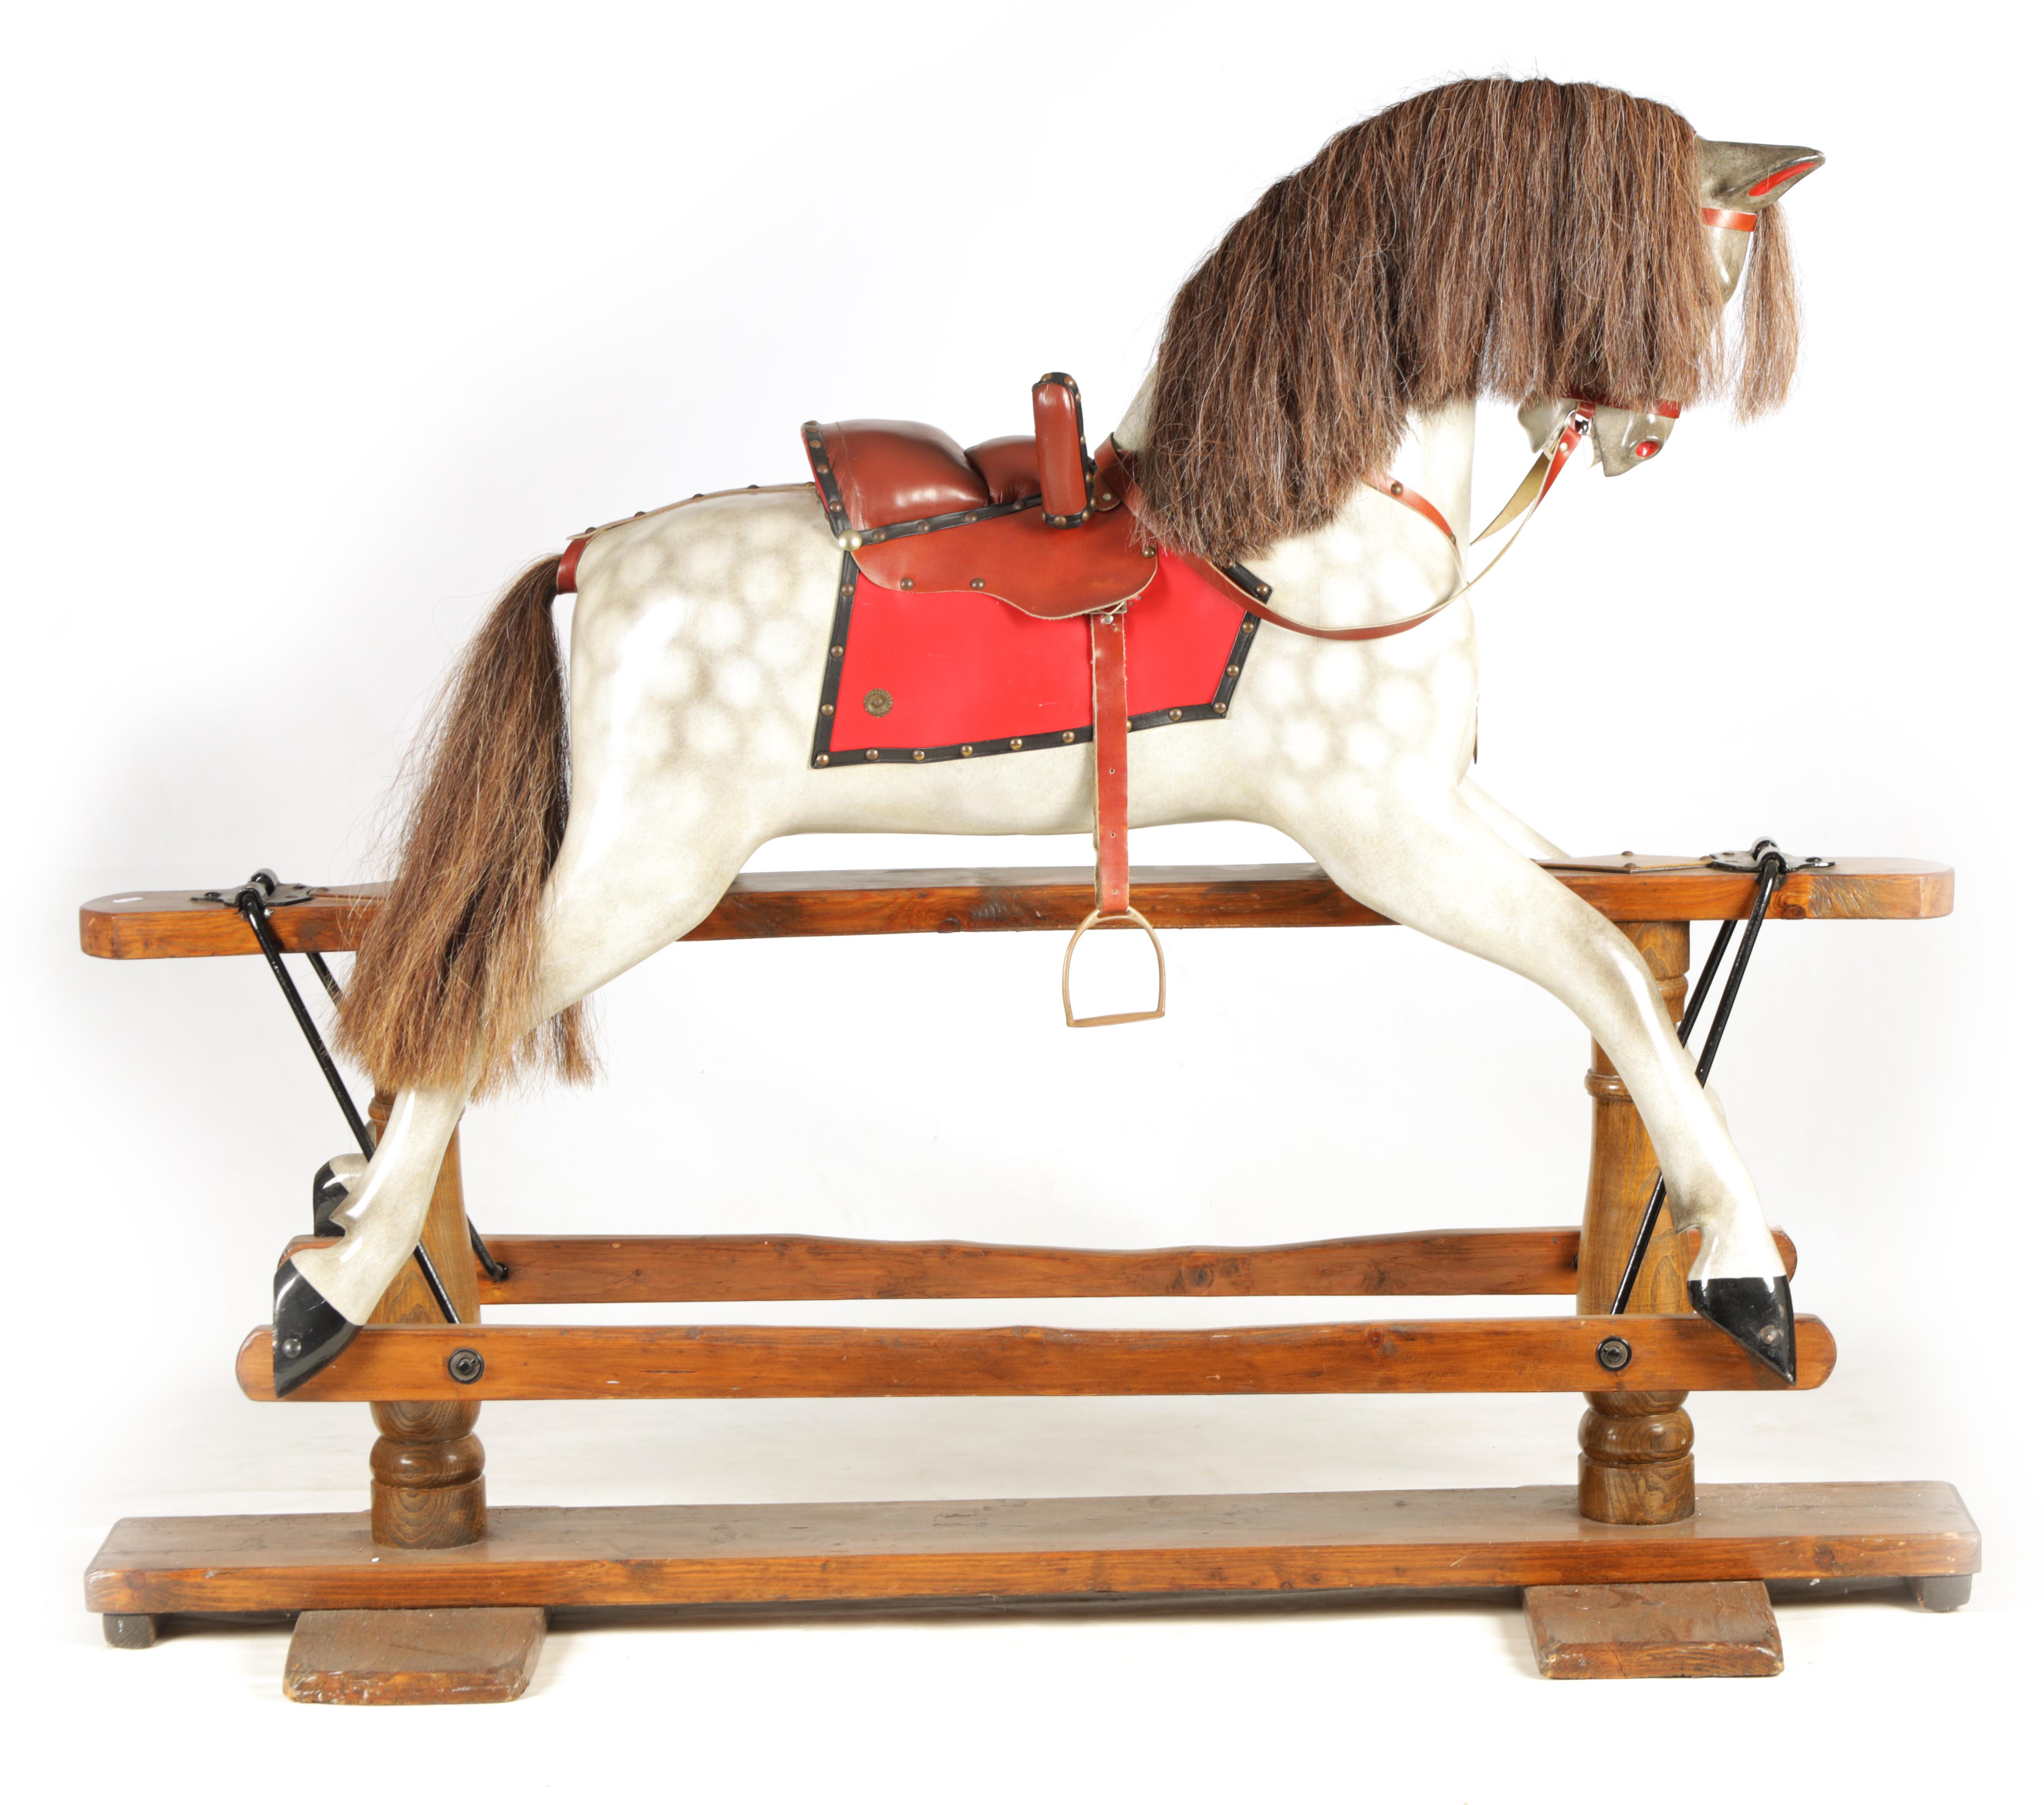 A LARGE 20TH CENTURY DAPPLE GREY PAINTED WOOD ROCKING HORSE with leather seat and bridle 157cm